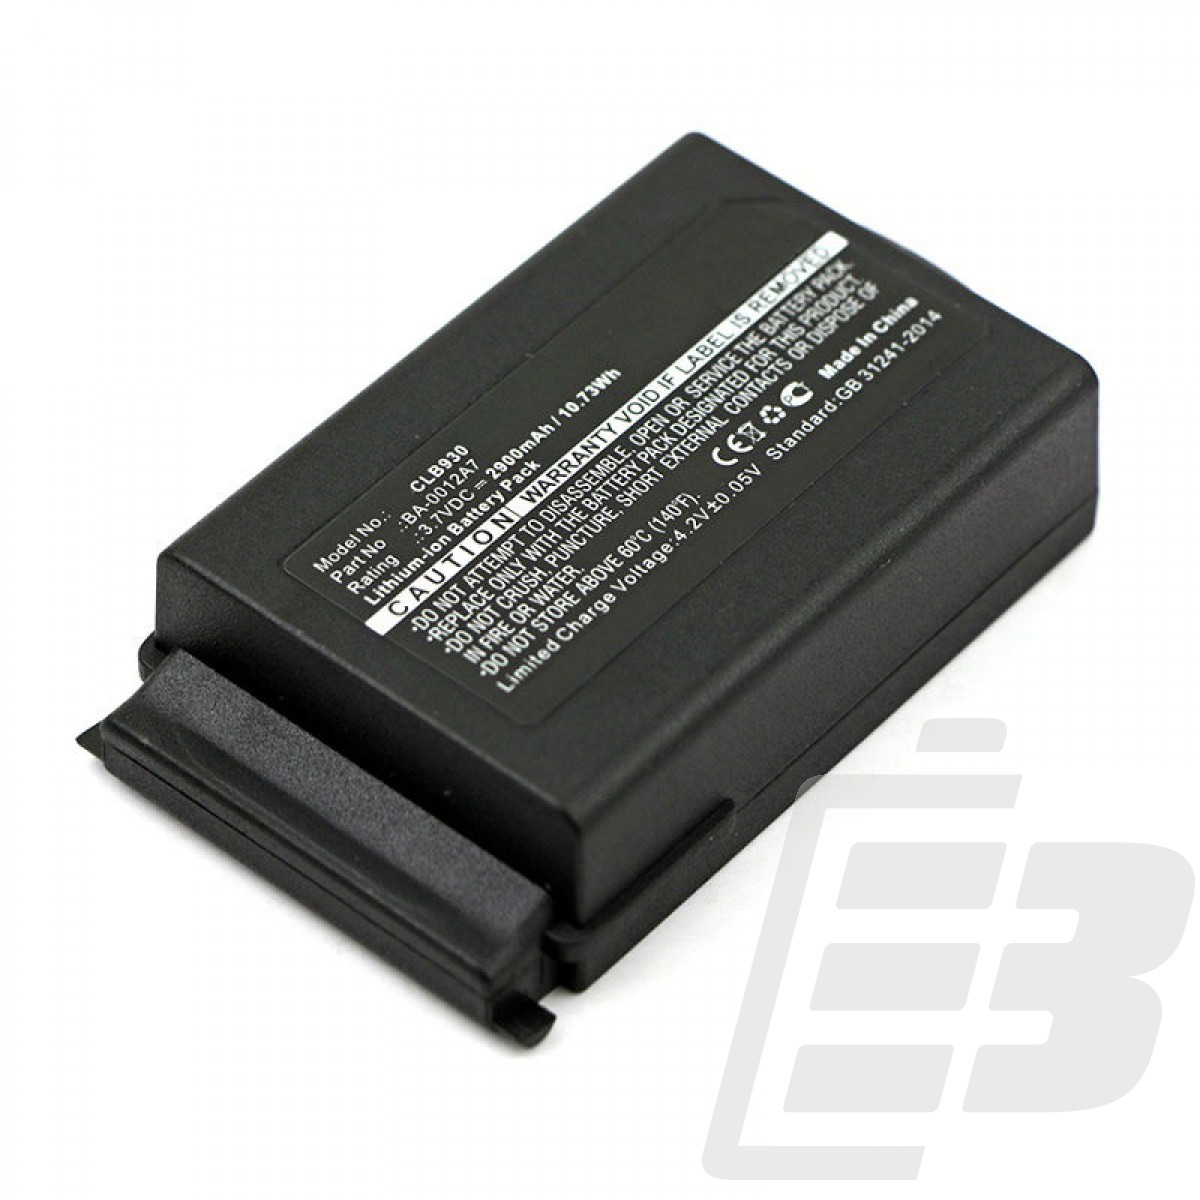 Barcode scanner battery Cipherlab 9300_1